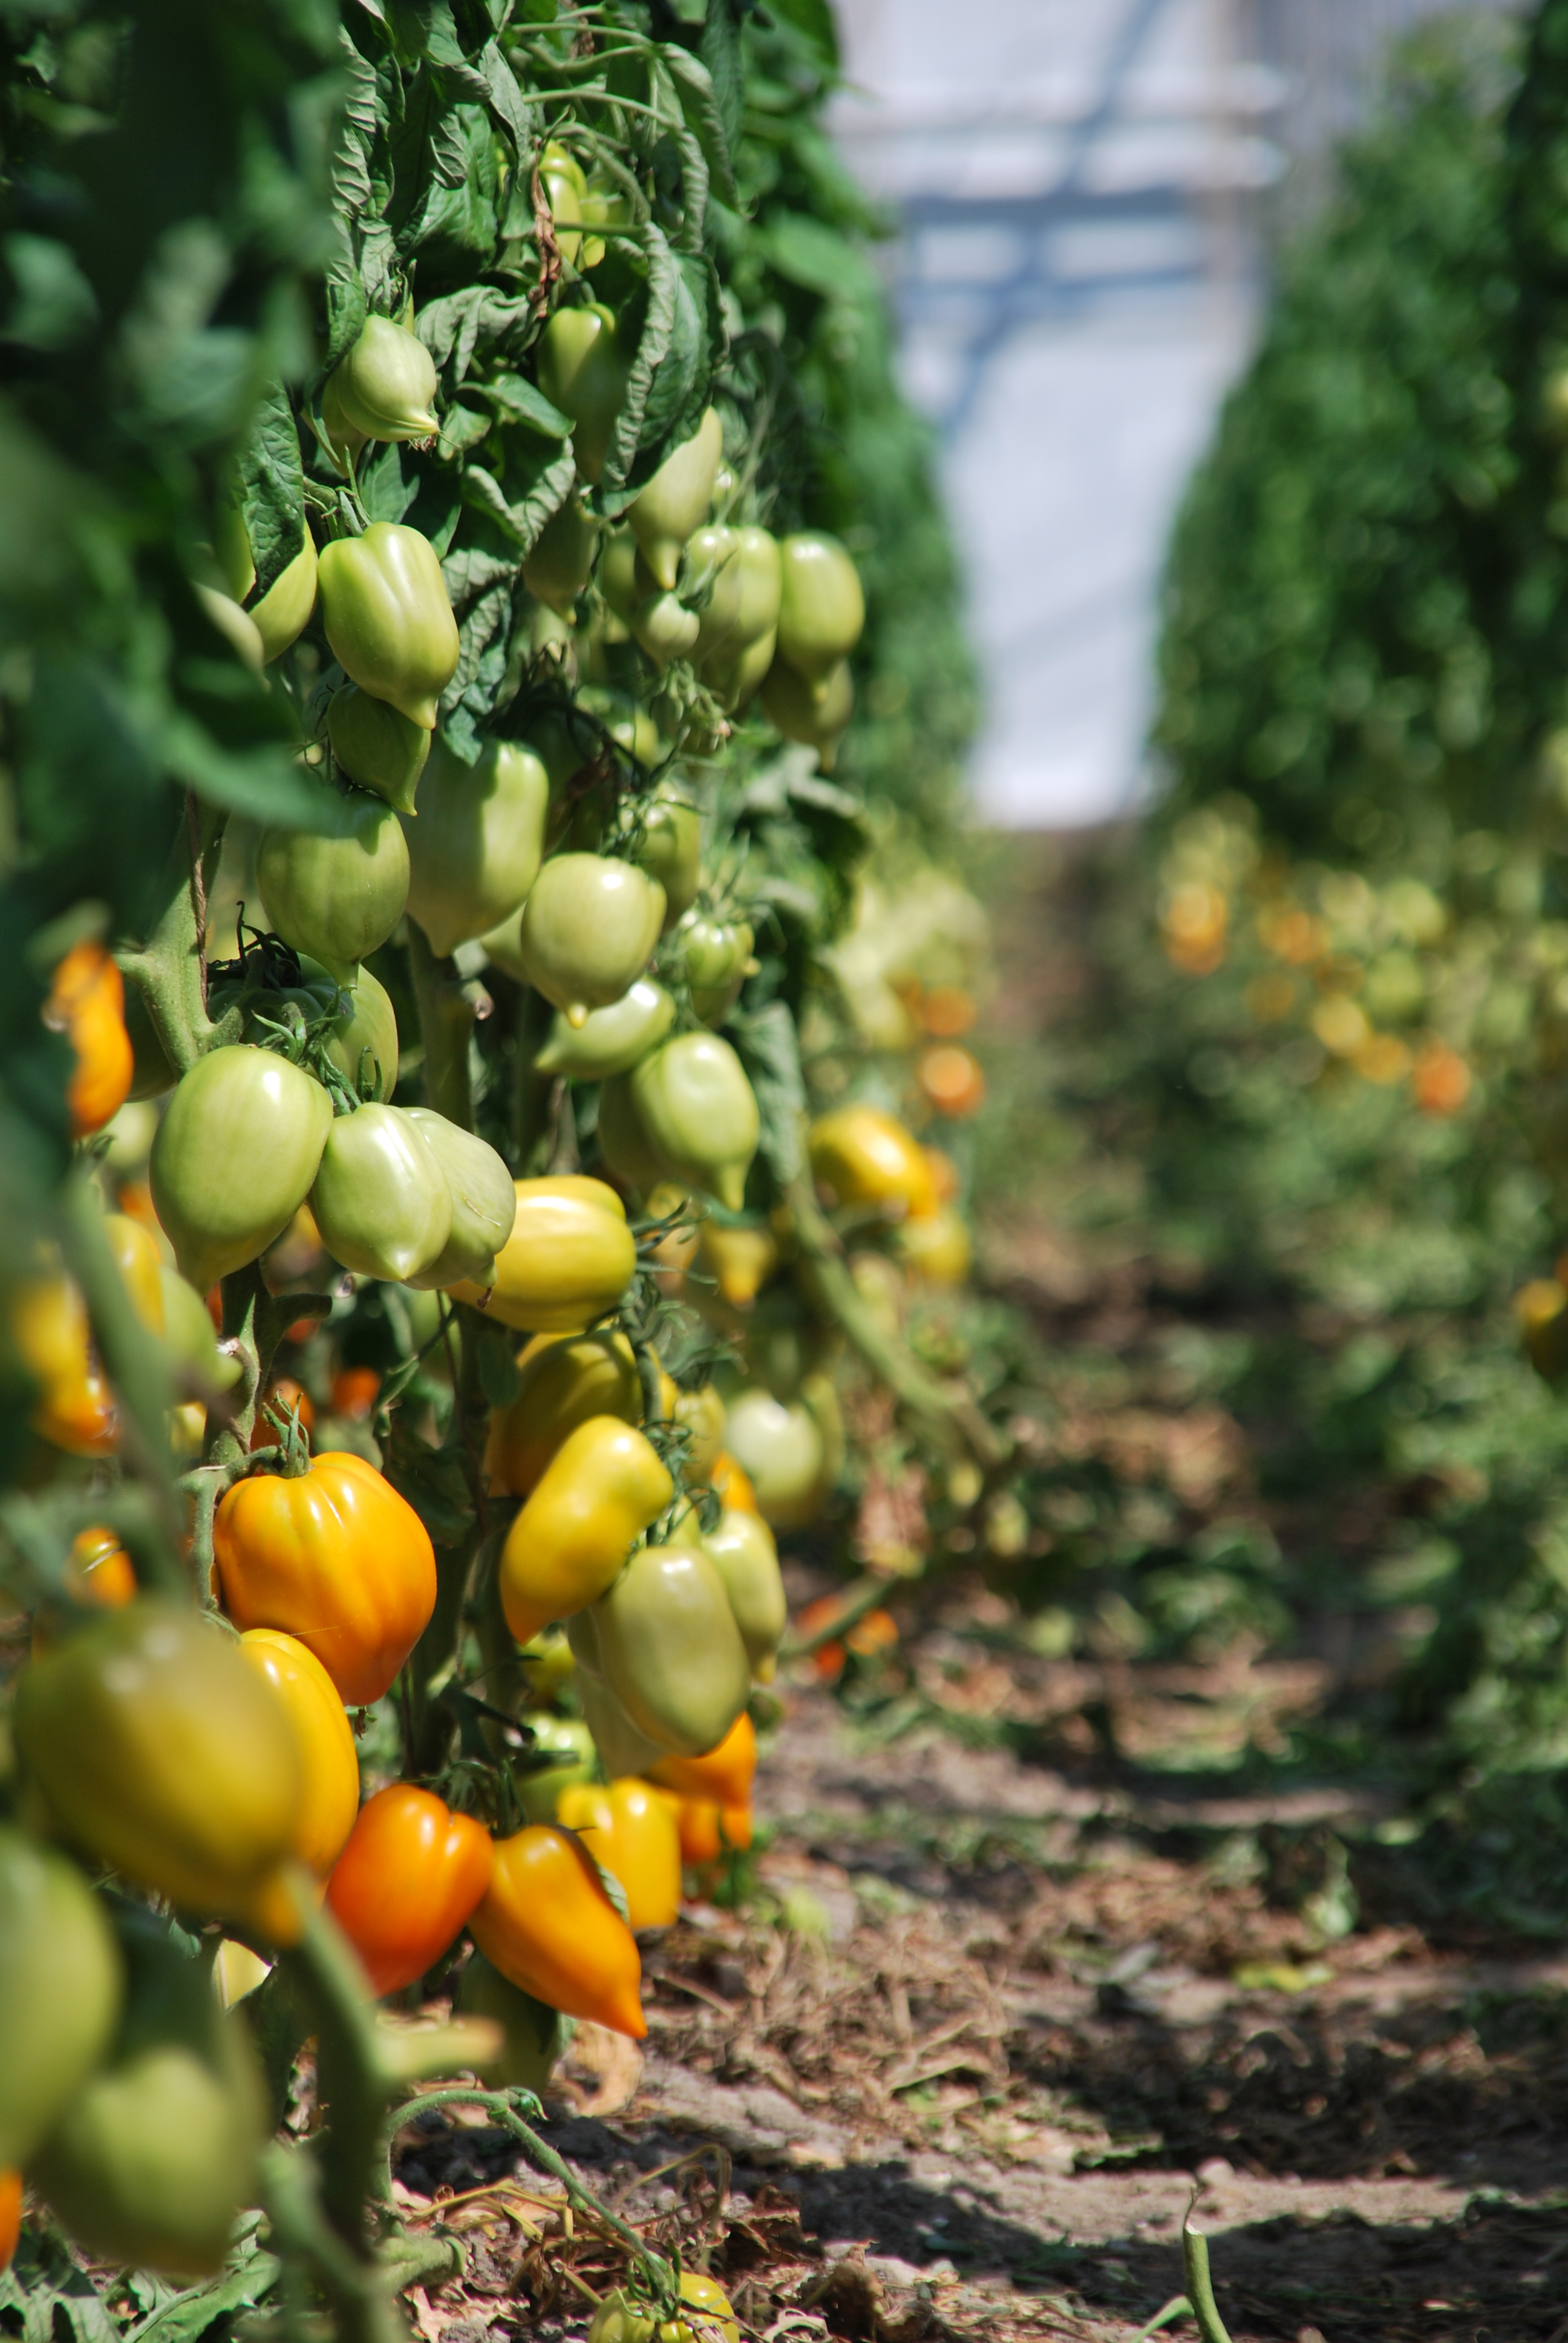 Quantify Planting for Food and Jobs Policy - SEND Ghana ...